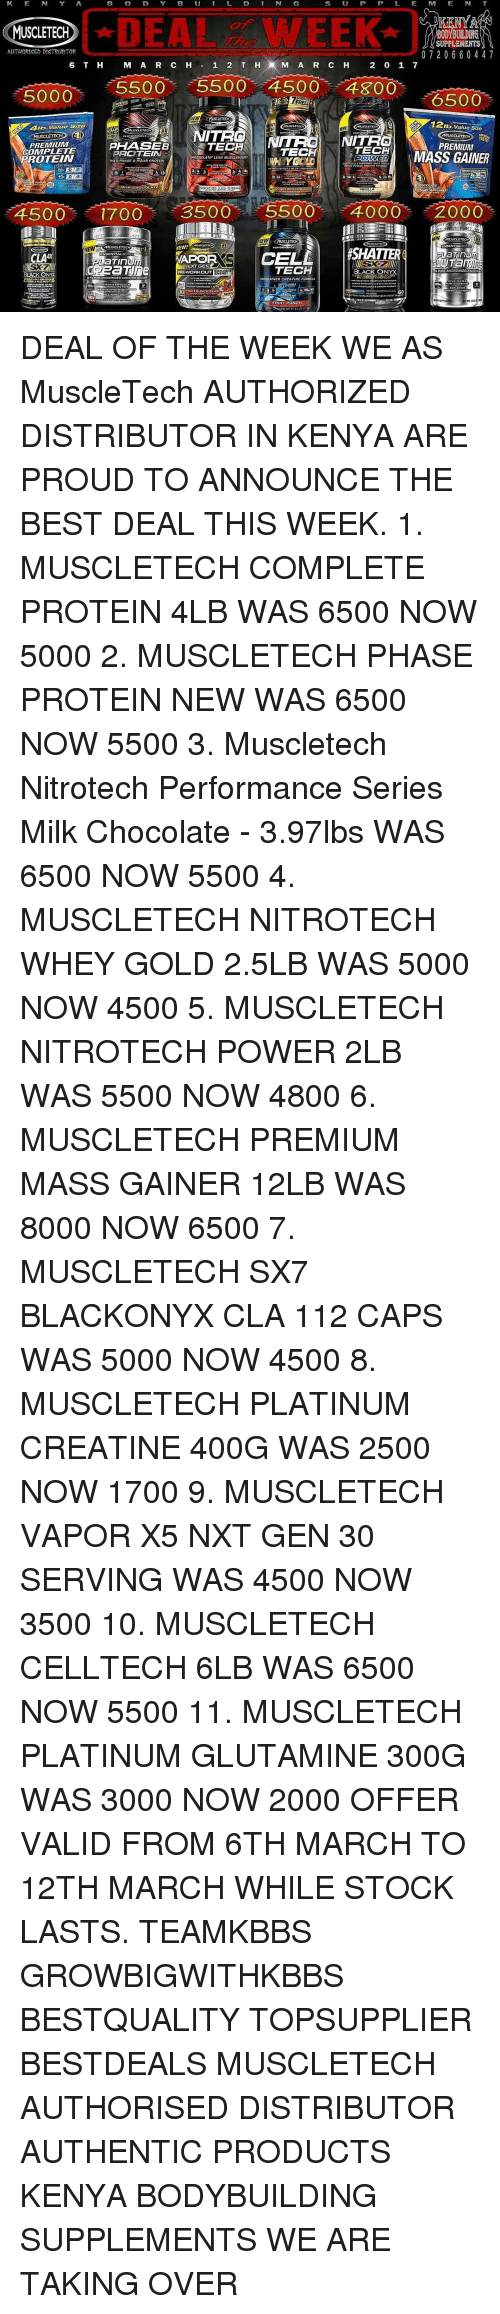 Idea Week Muscletech Supplements Authorised Distrubtor O 7 2 0 6 Nitrotech Whey Gold Lb Lean Memes And Stocks